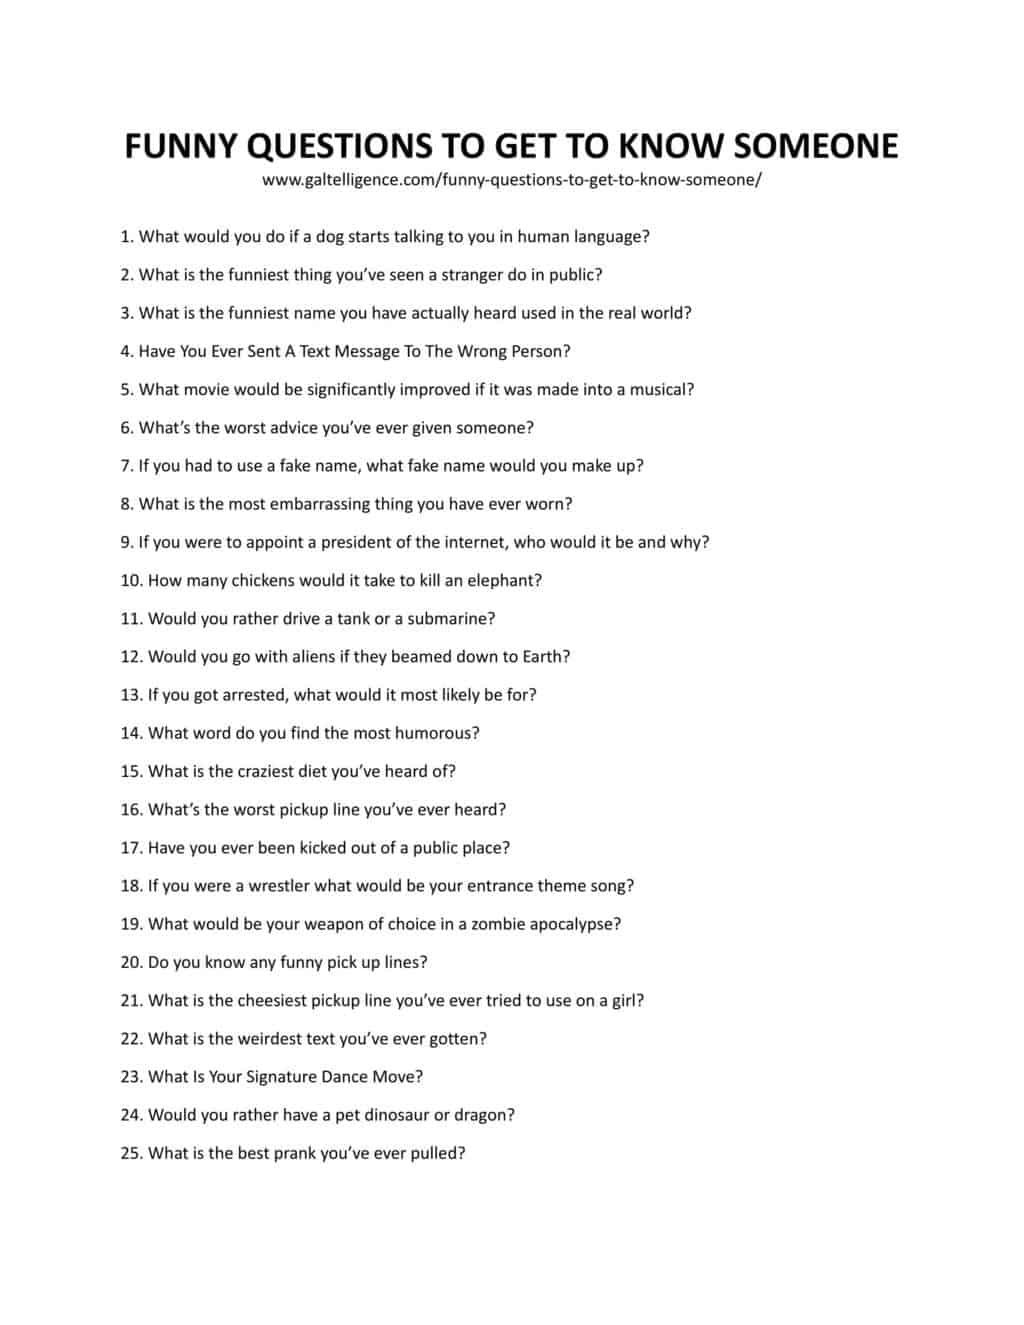 Downloadable and Printable List of Funny Questions To Get To Know Someone